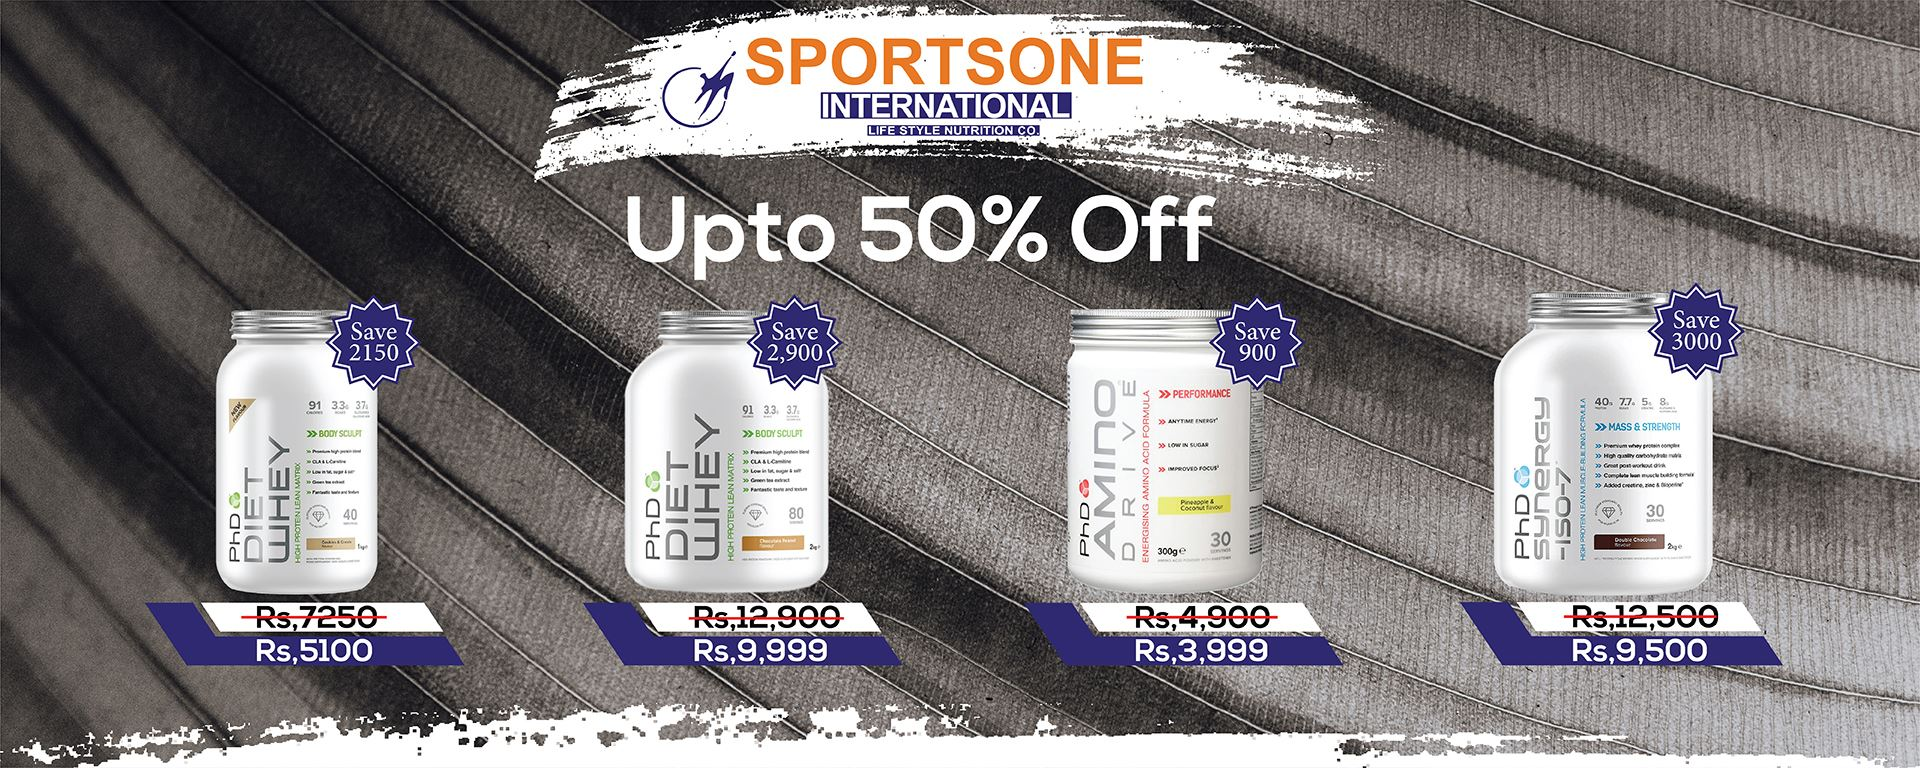 sportsone-pakistan-promotion-offer-phd-halal-supplements-proteins